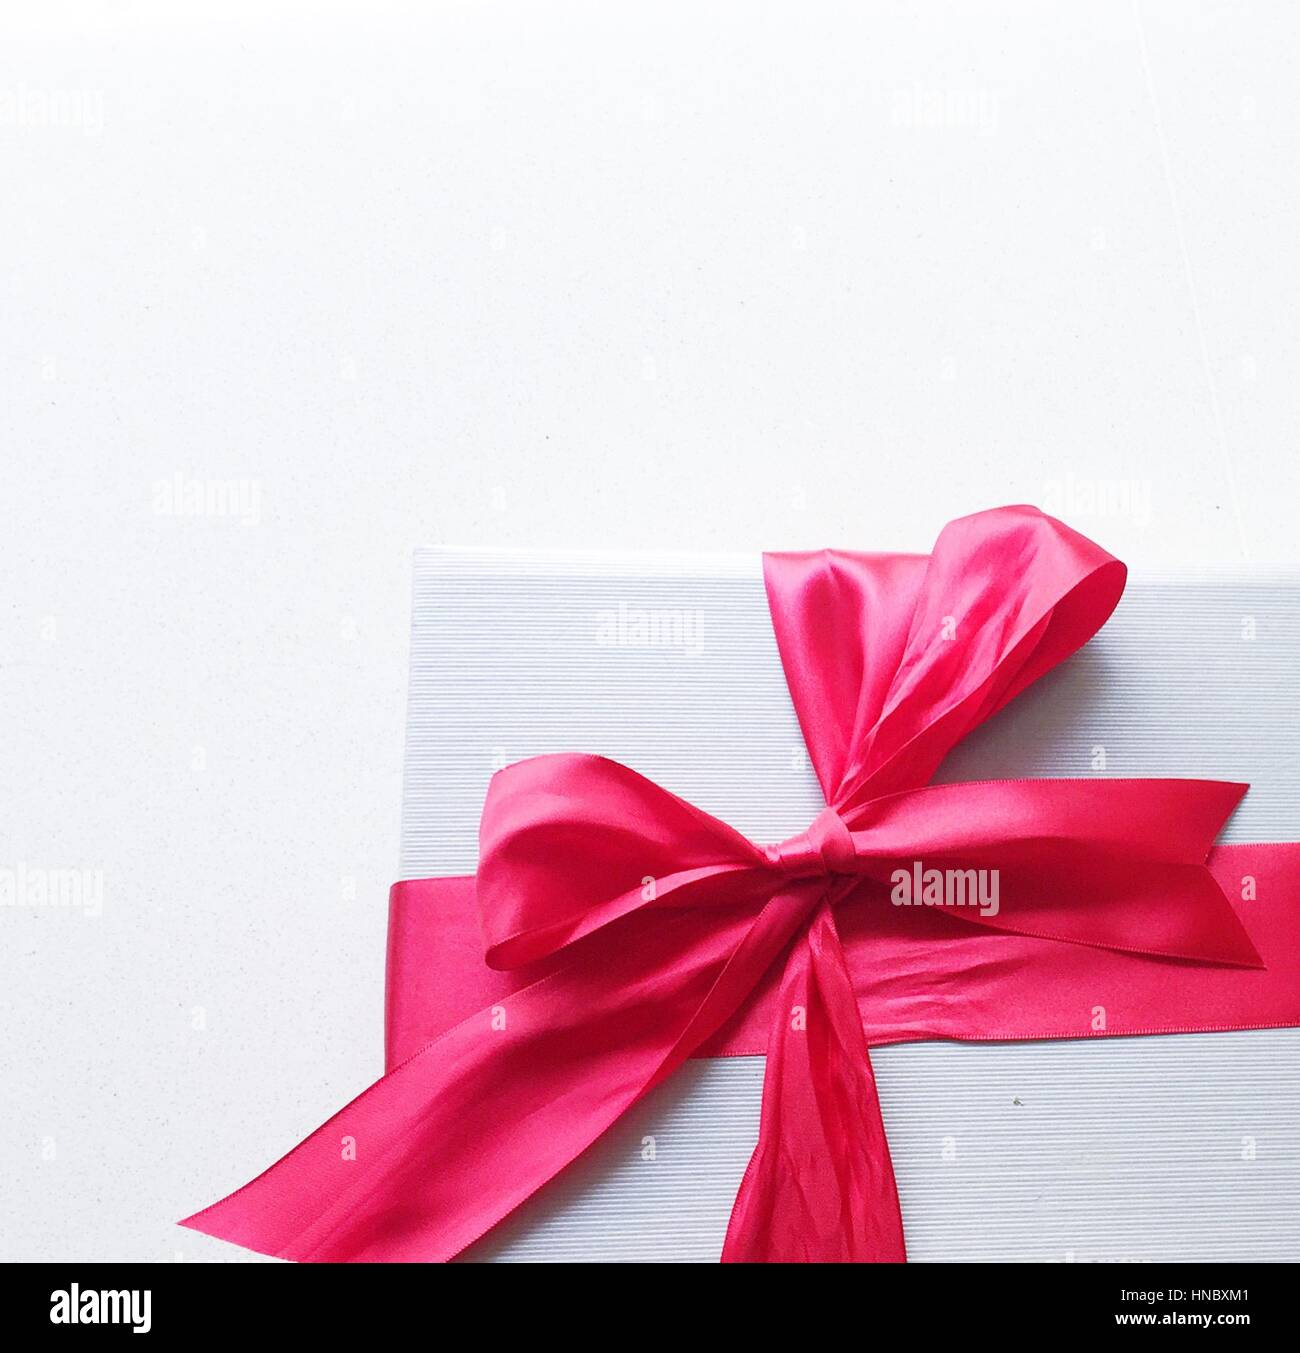 Close-up of a gift wrapped with pink bow Stock Photo